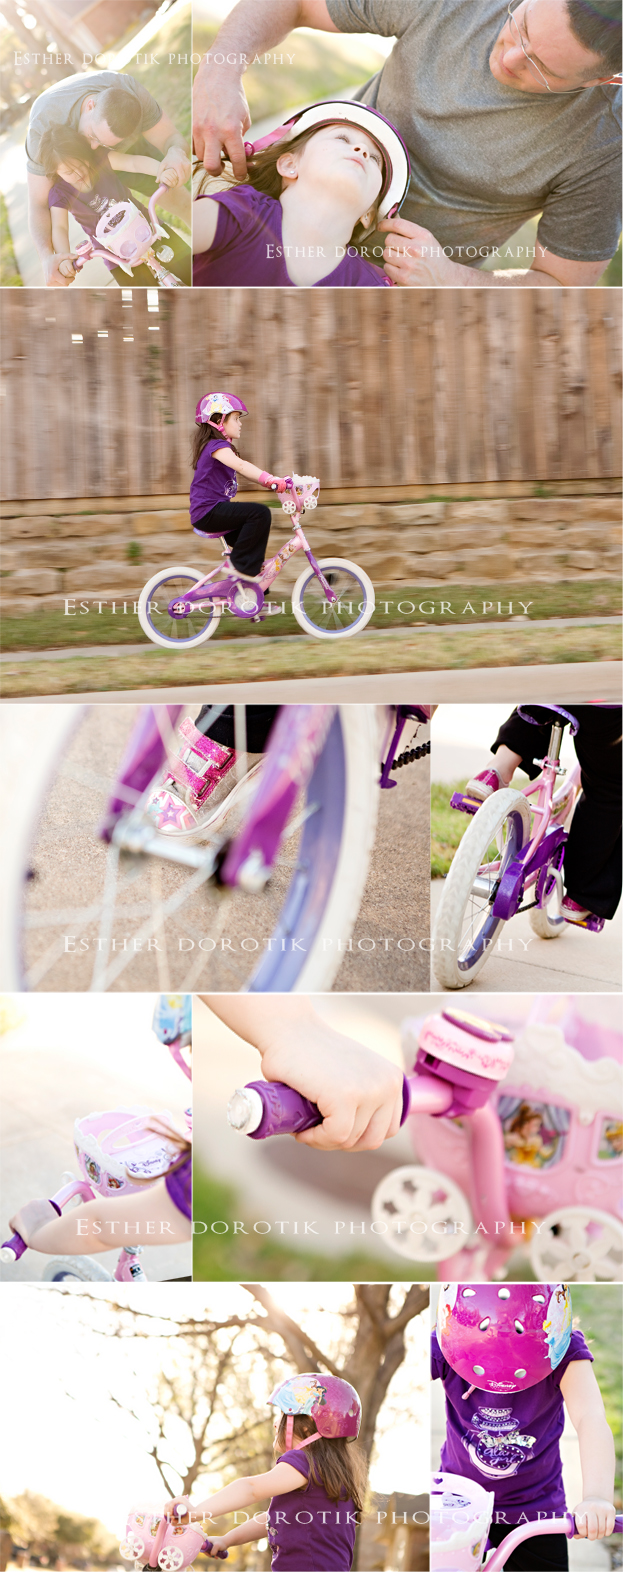 fun-bike-riding-by-Fort-worth-lifestyle-photographer